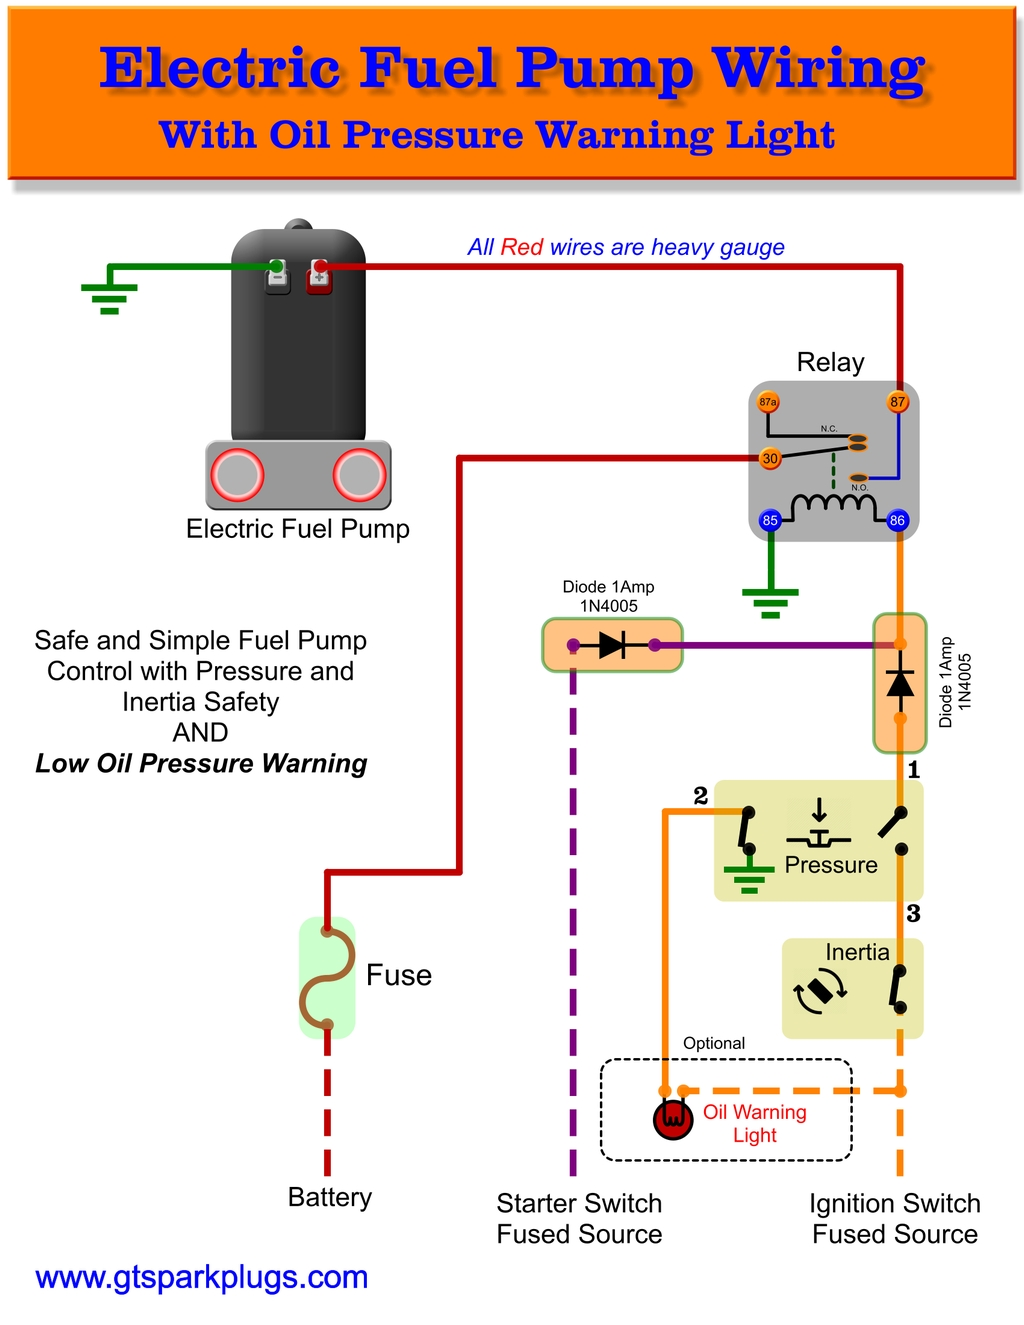 electric fuel pump wiring diagram gtsparkplugs electric fuel pump wiring diagram vw bug this is a simple guide to safer wiring for your electric fuel pump spend some time wiring things up right and in the event of a problem it can save you